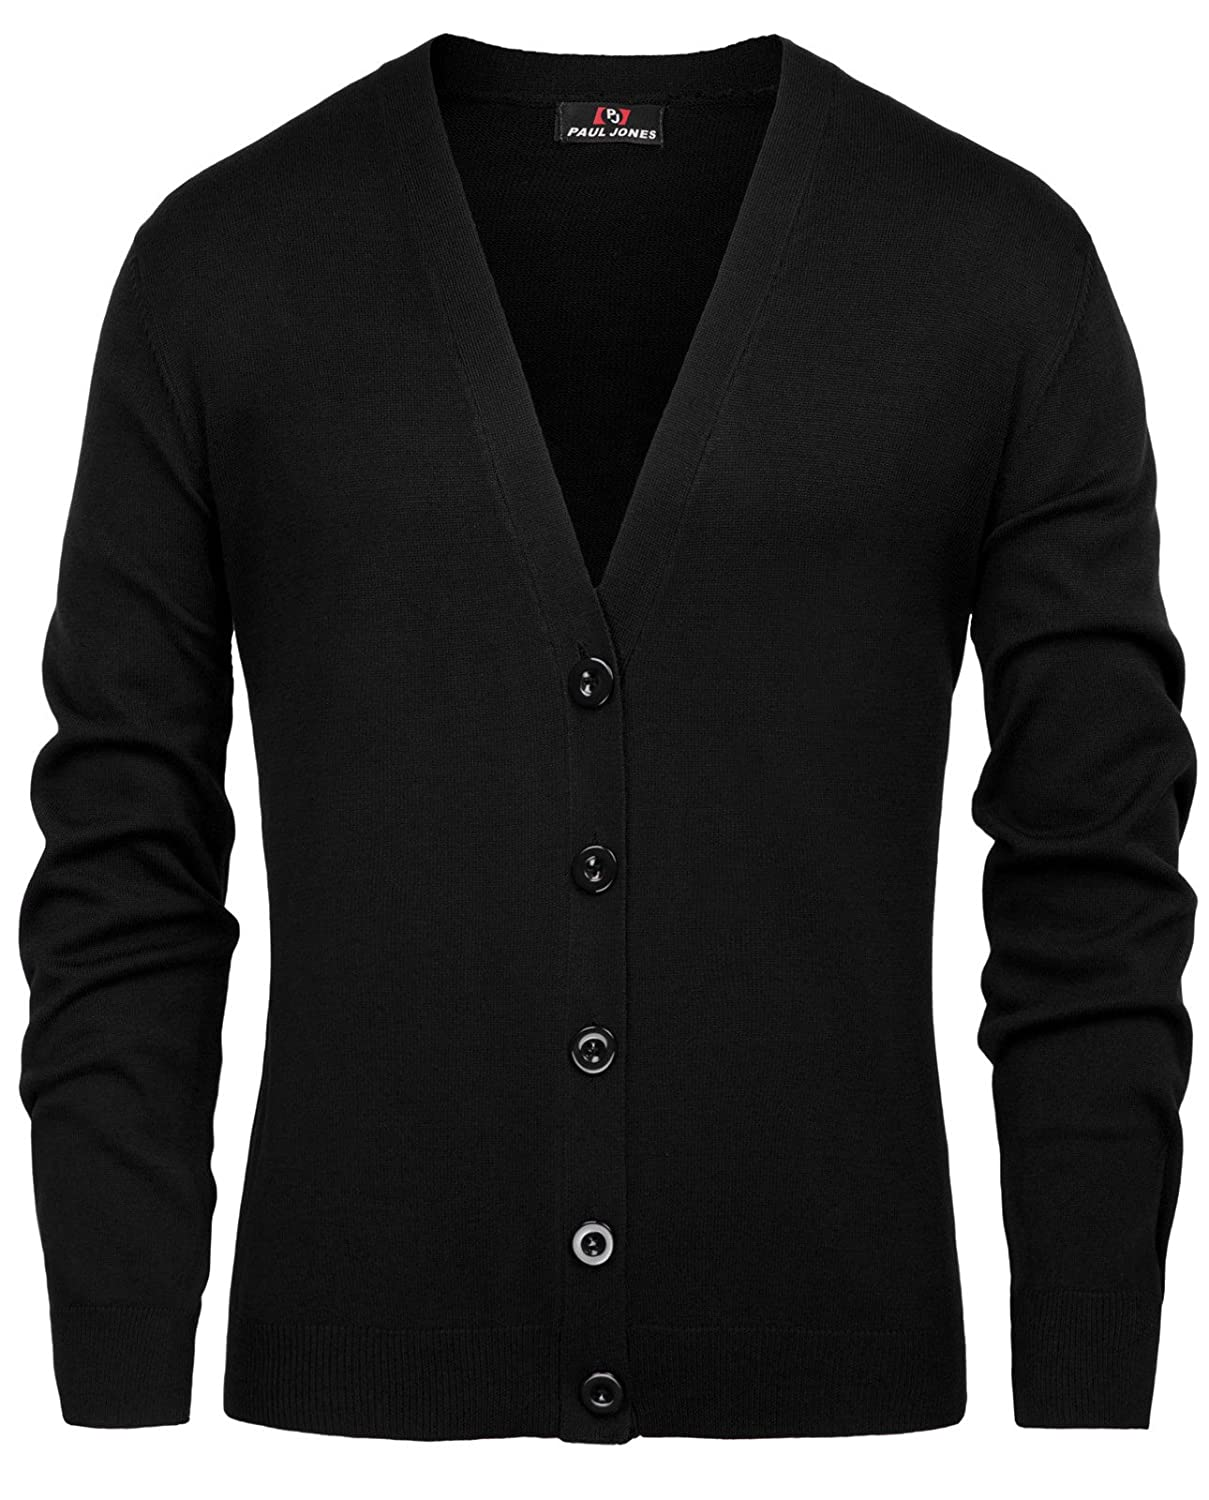 PAUL JONES Men's Stylish V-Neck Button Placket Cardigan Sweater with Ribbing Edge